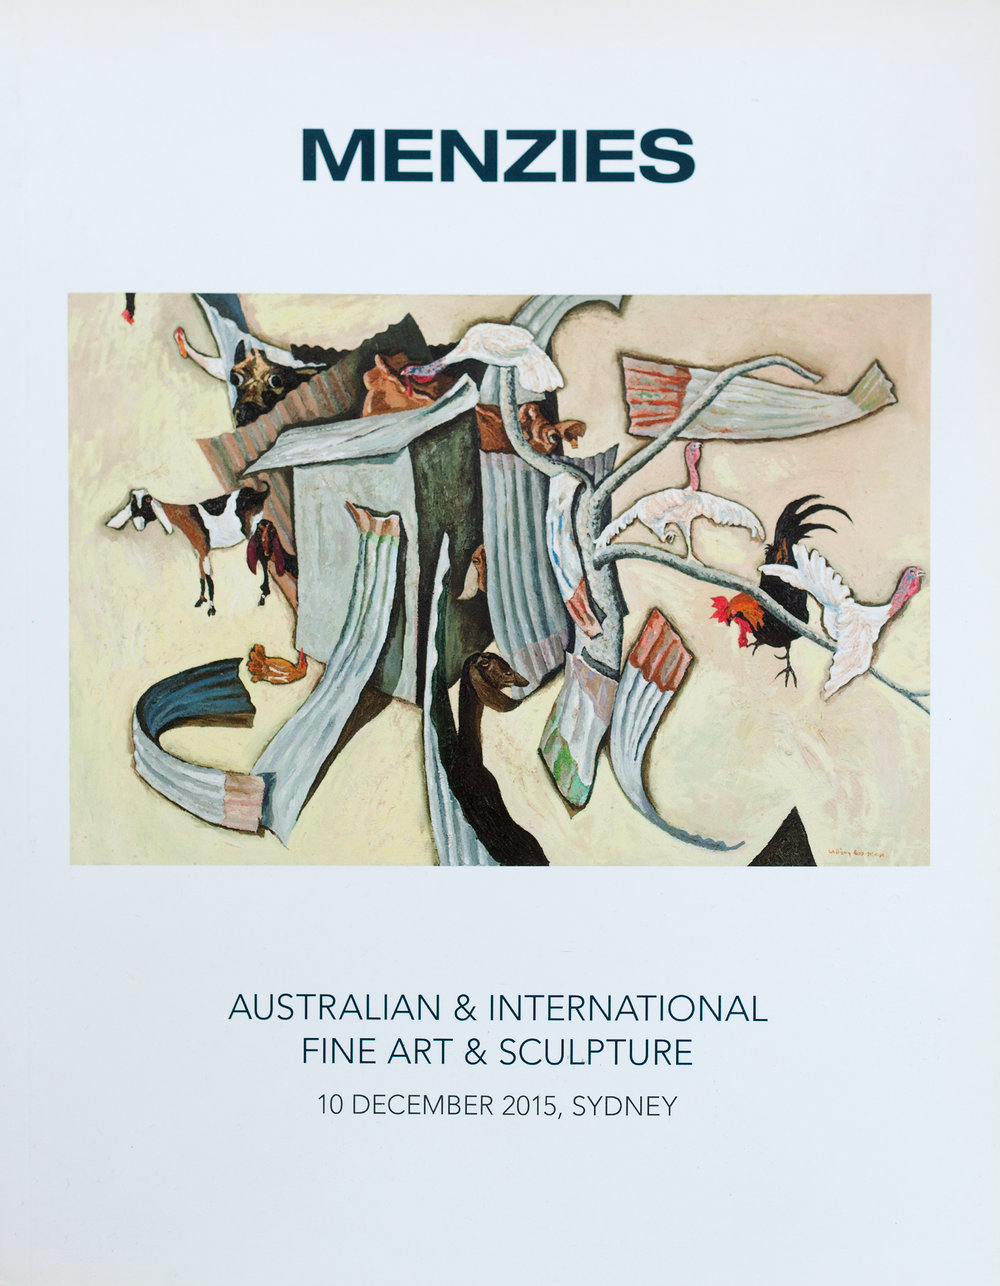 171023 Menzies Catalogues_001.jpg